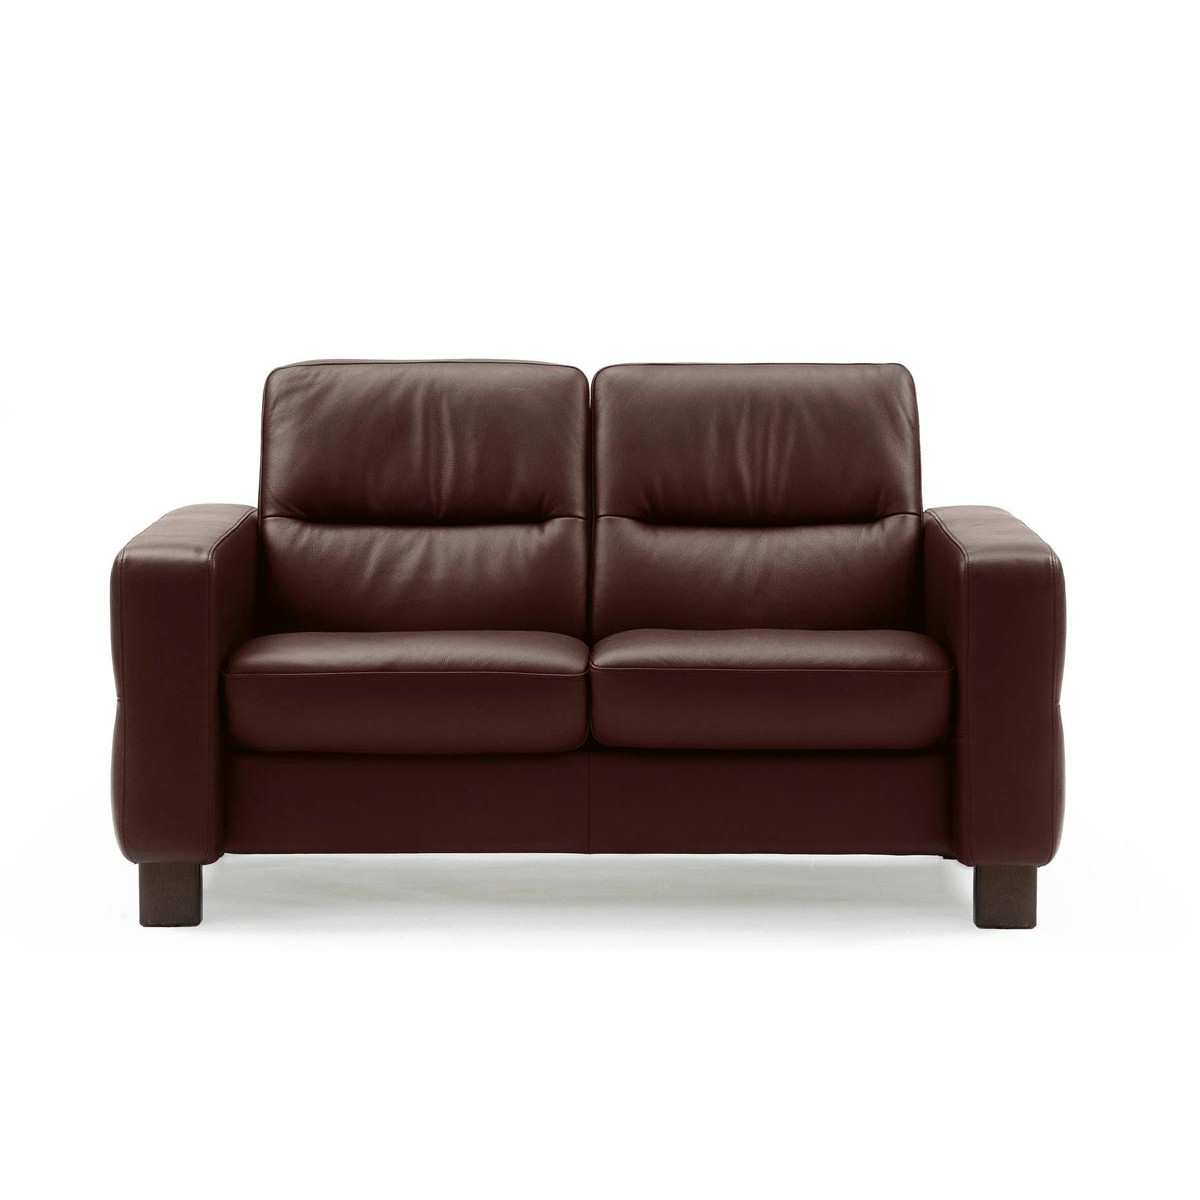 Stressless Wave Low Back Loveseat From 2 By Stressless Recliner Store